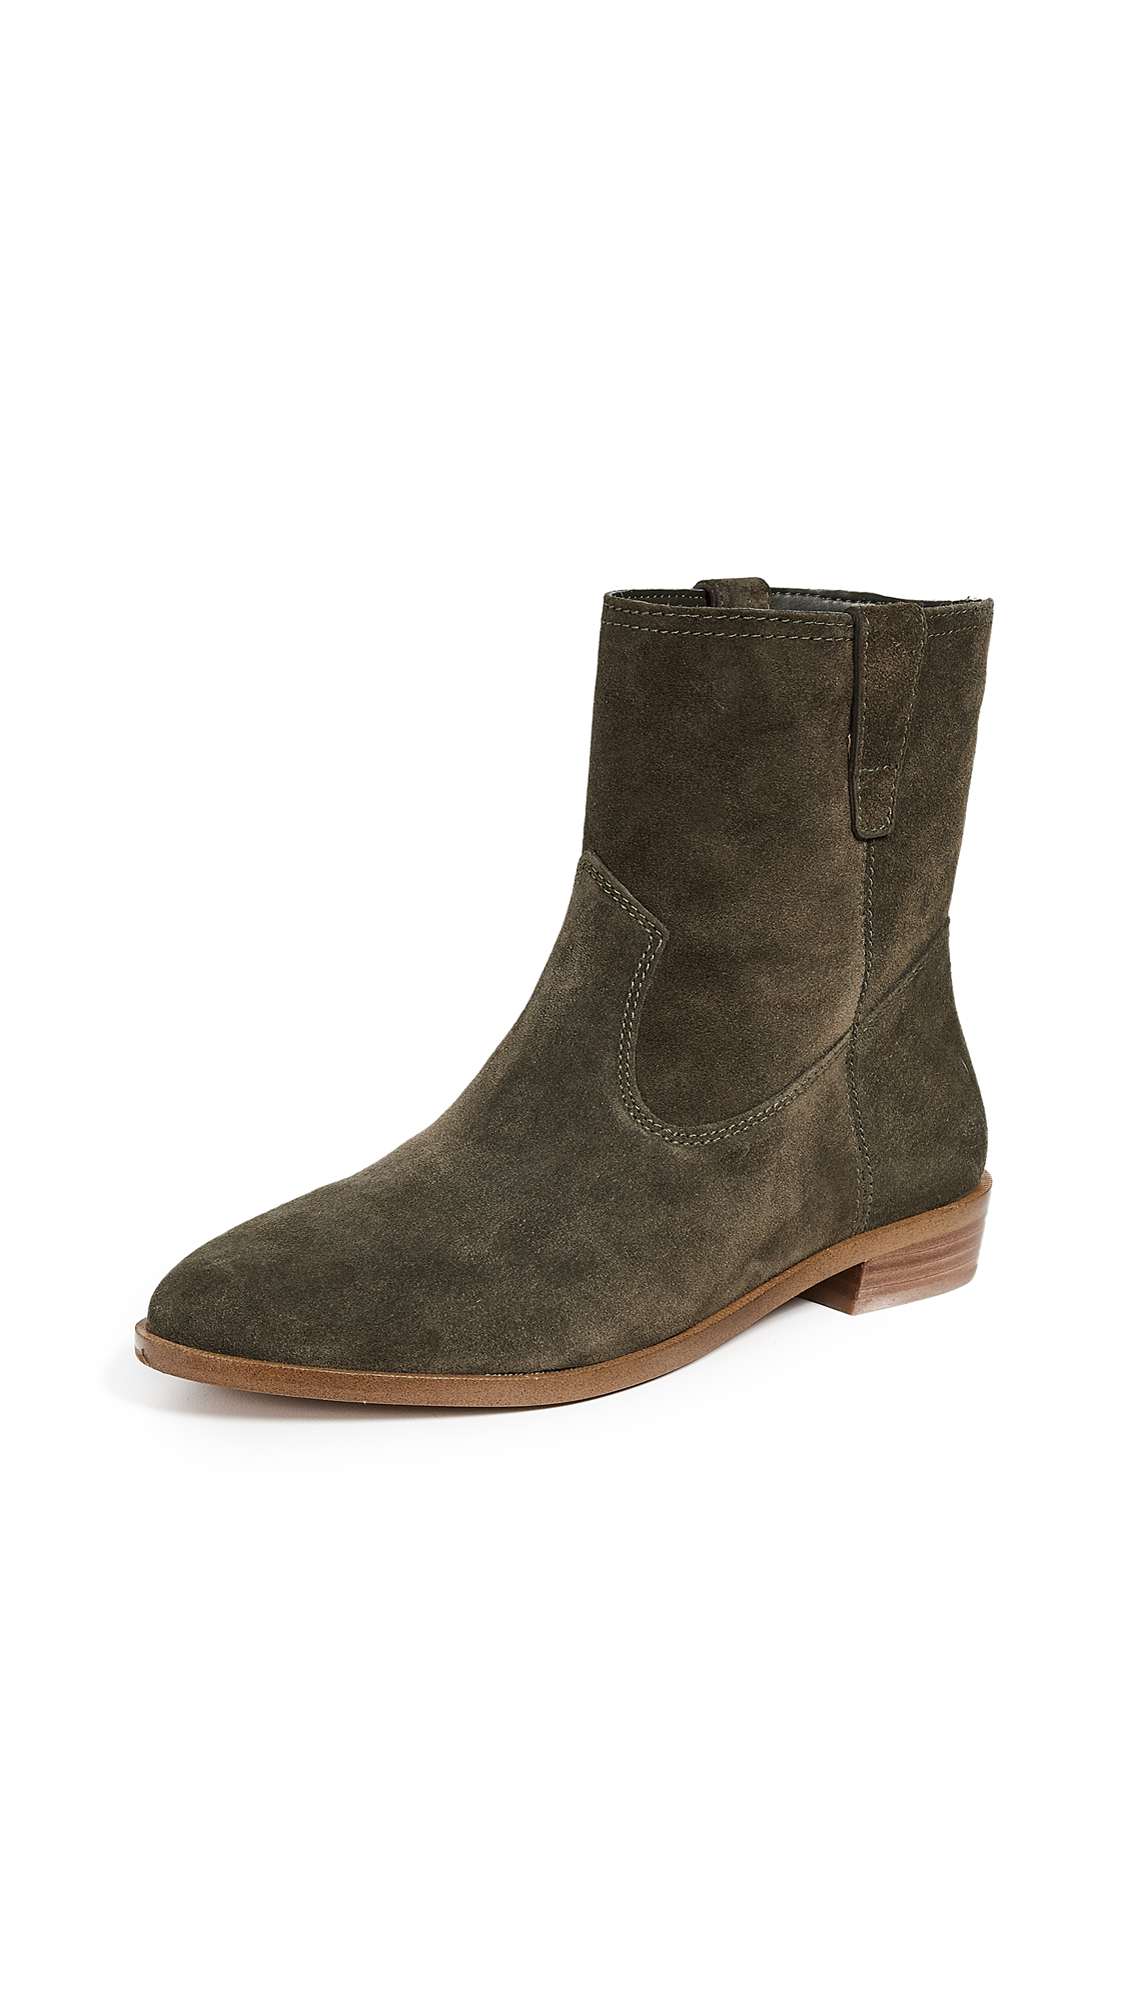 Rebecca Minkoff Chasidy Boots - Olive